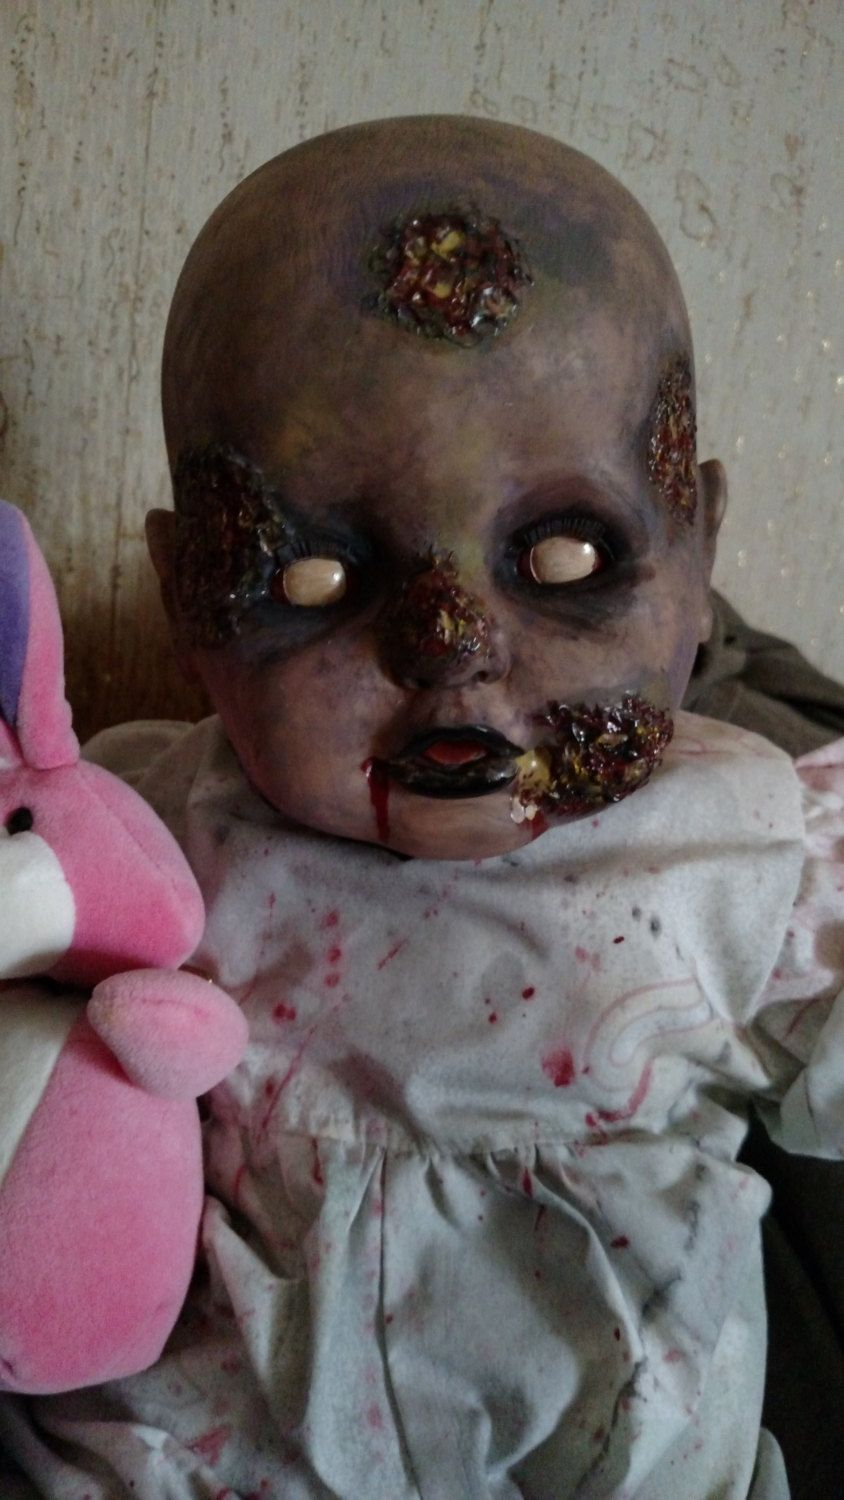 Life Sized Zombie Baby by MistressRae13 on Etsy